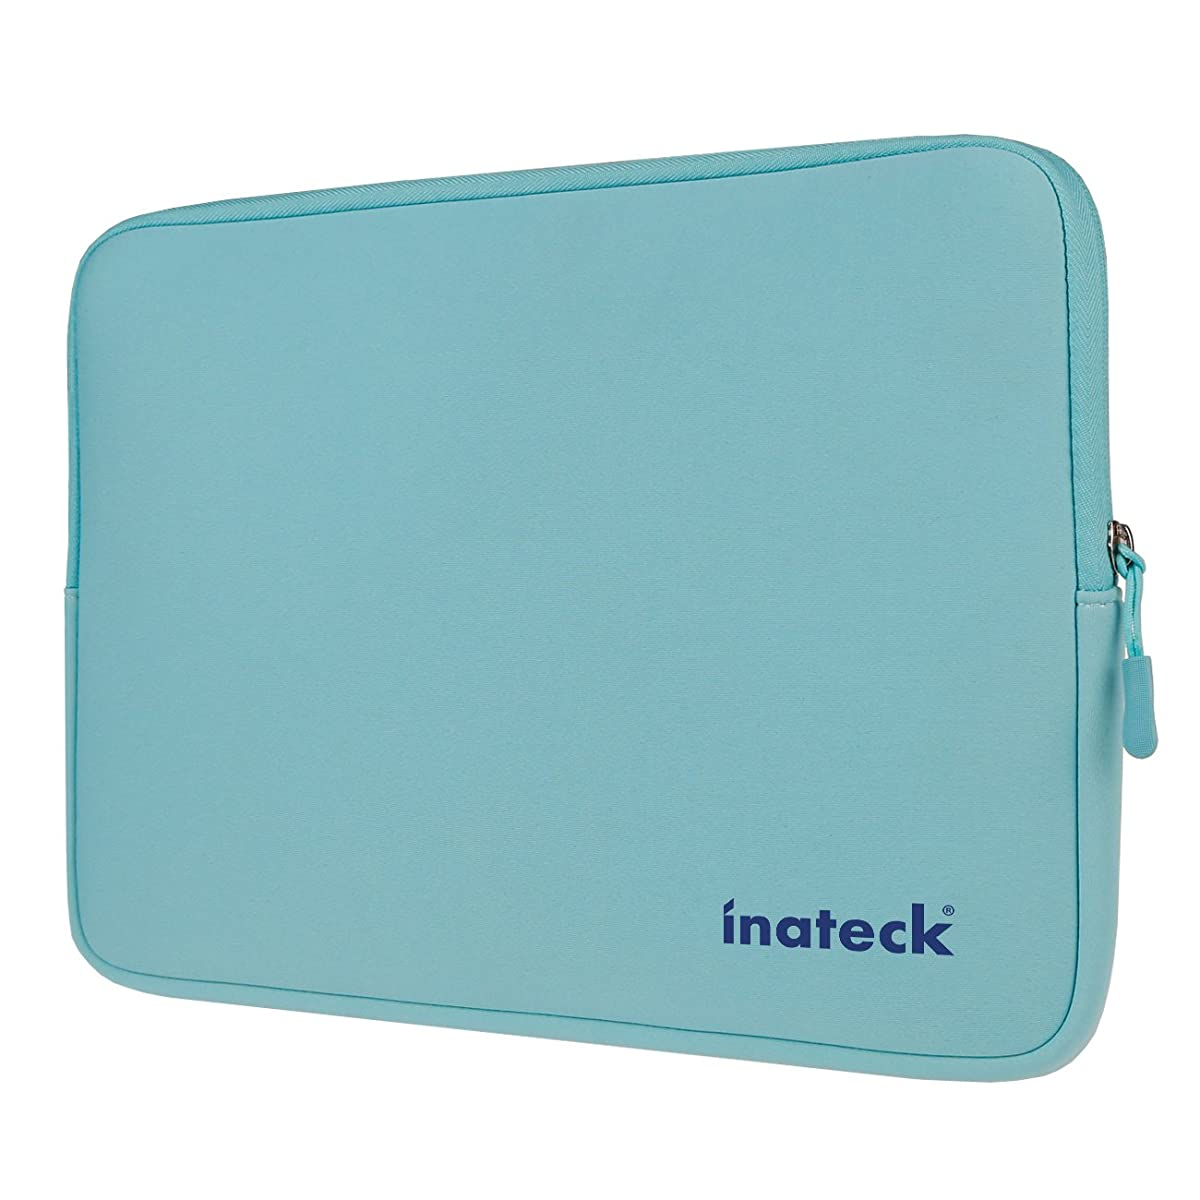 Inateck 15-15.6 Inch Water Repellent Neoprene Laptop Sleeve Protective Case - Teal